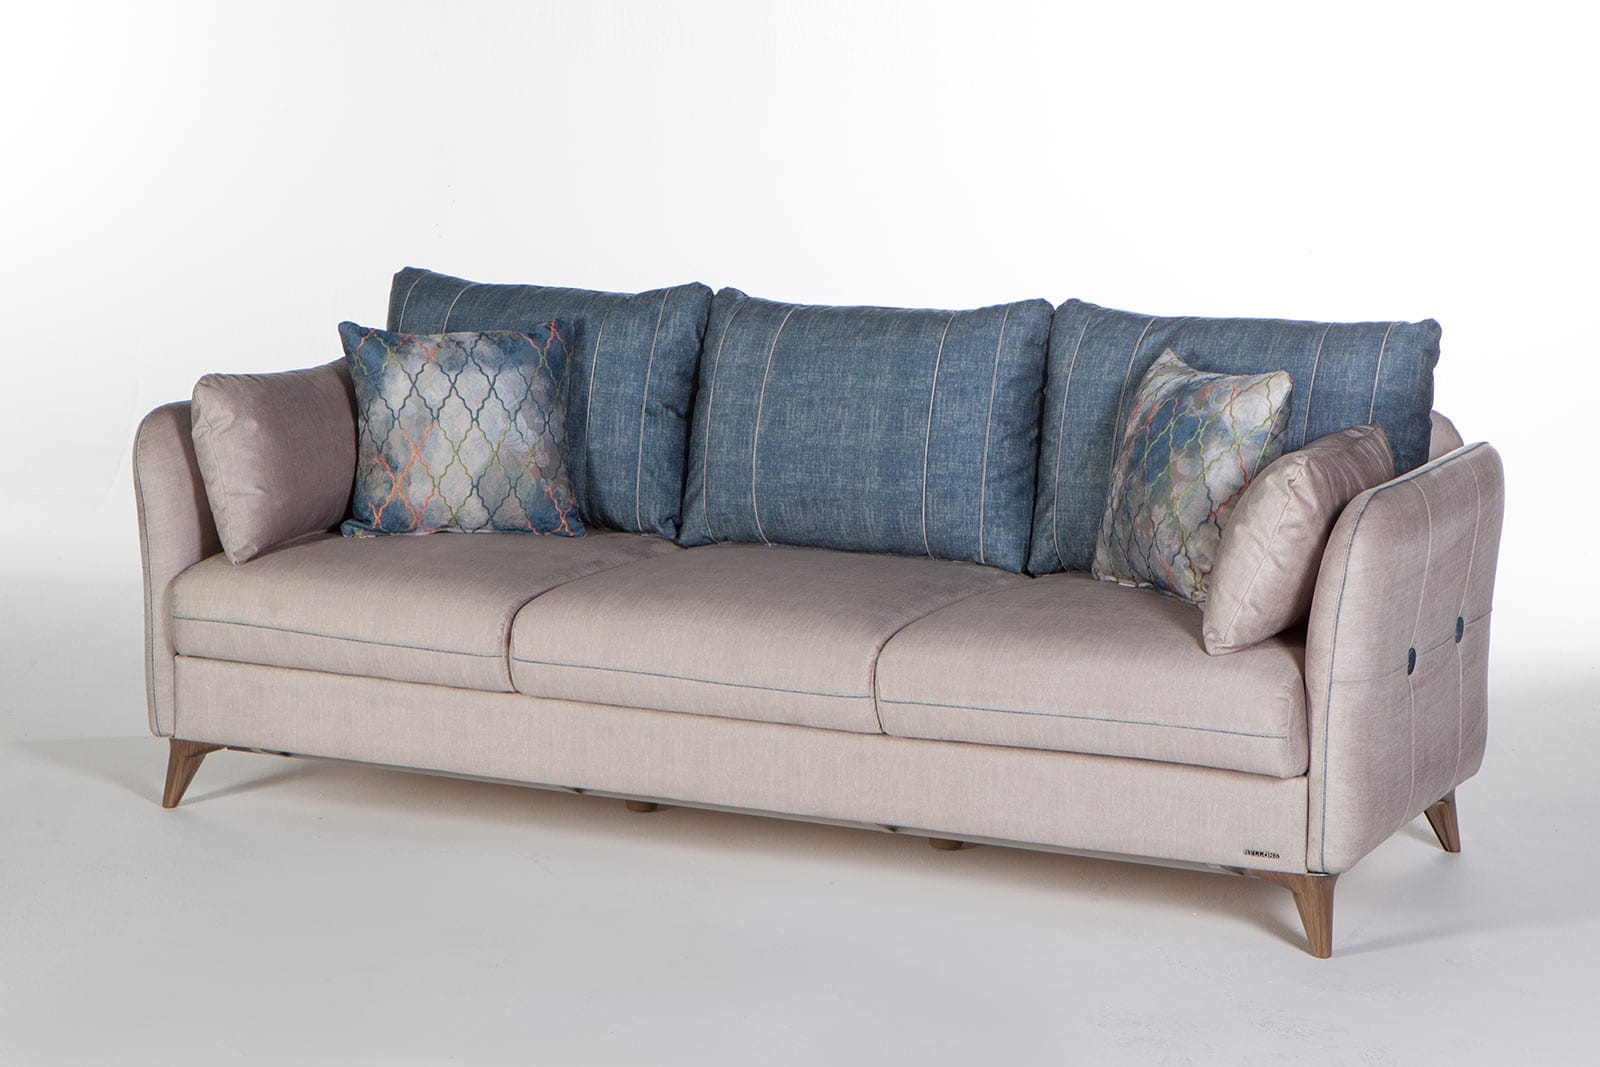 Picture of: Elit Light Gray Convertible Sofa Bed By Istikbal Furniture